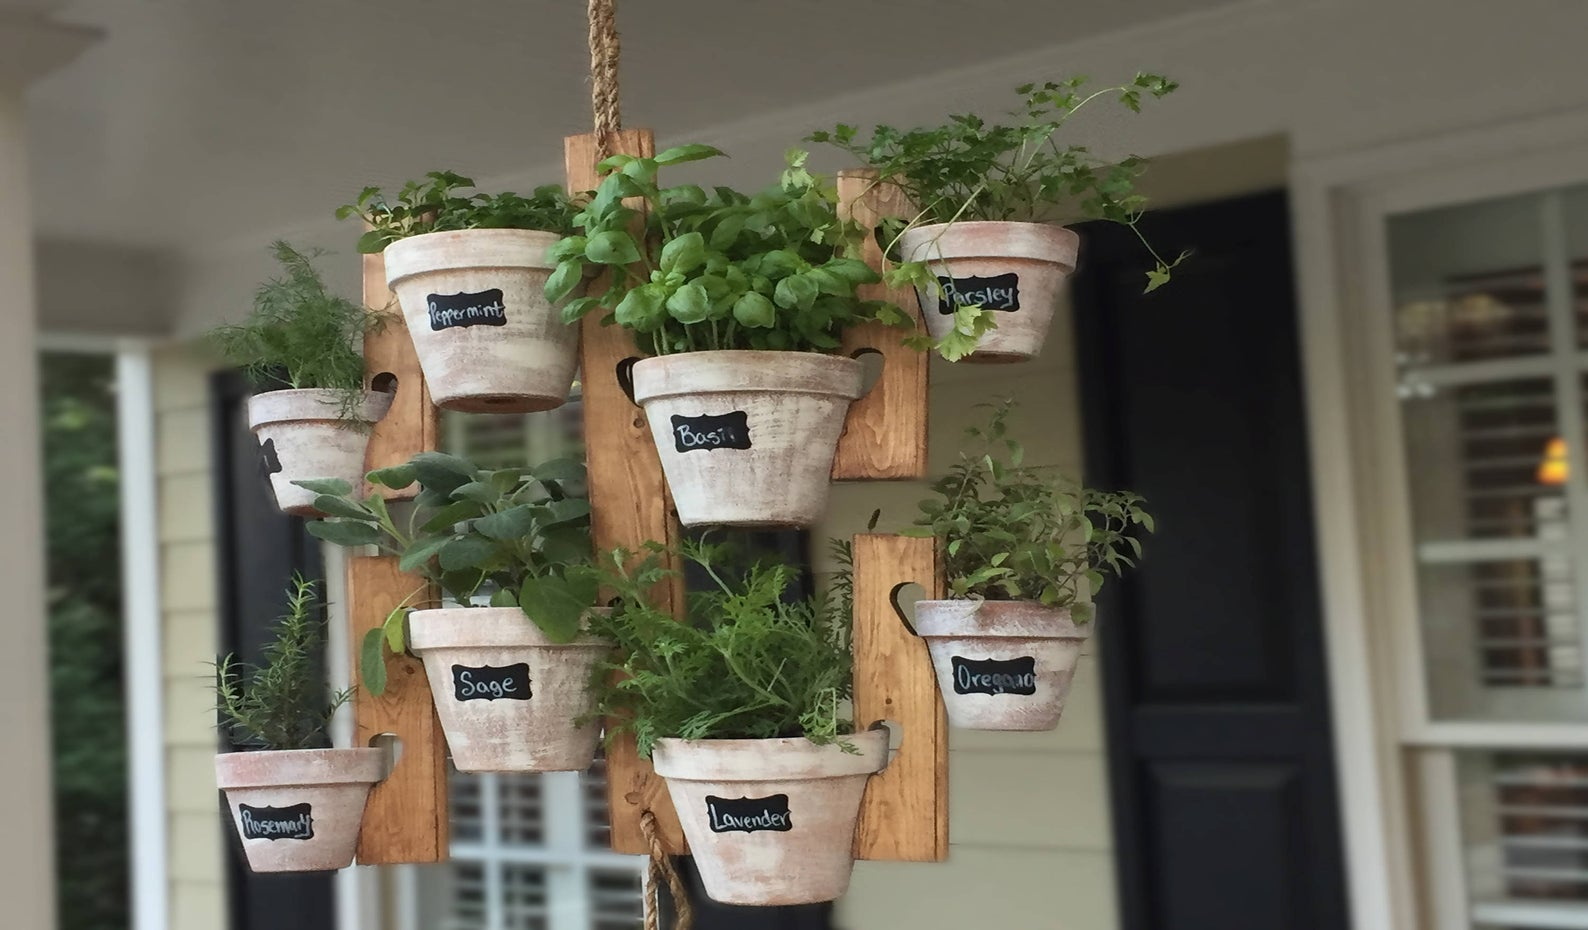 eight hanging pots labeled as herbs on wood holders